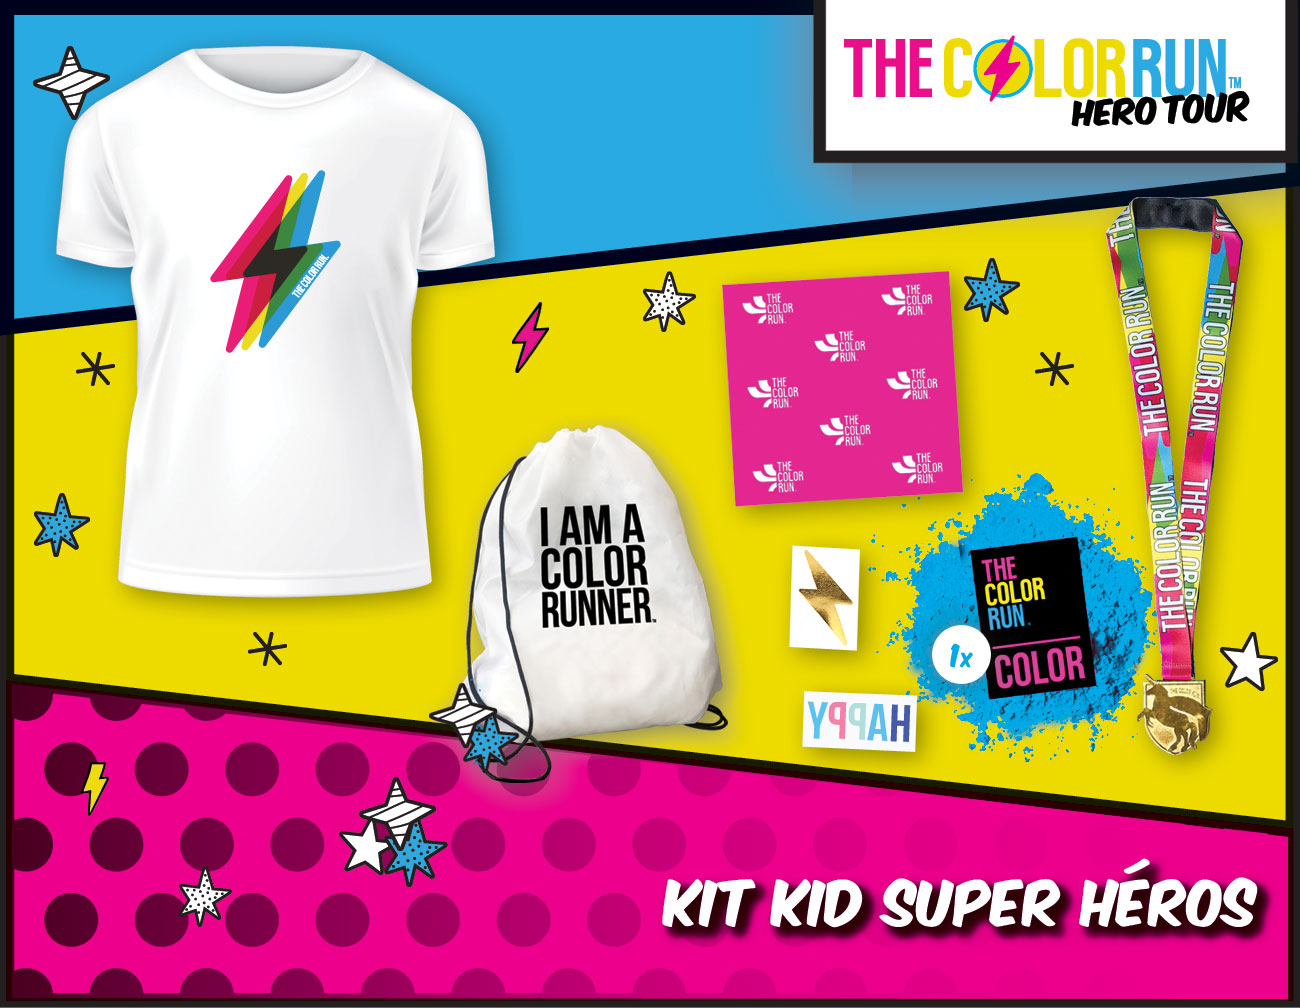 kid Super héros Participant Kit